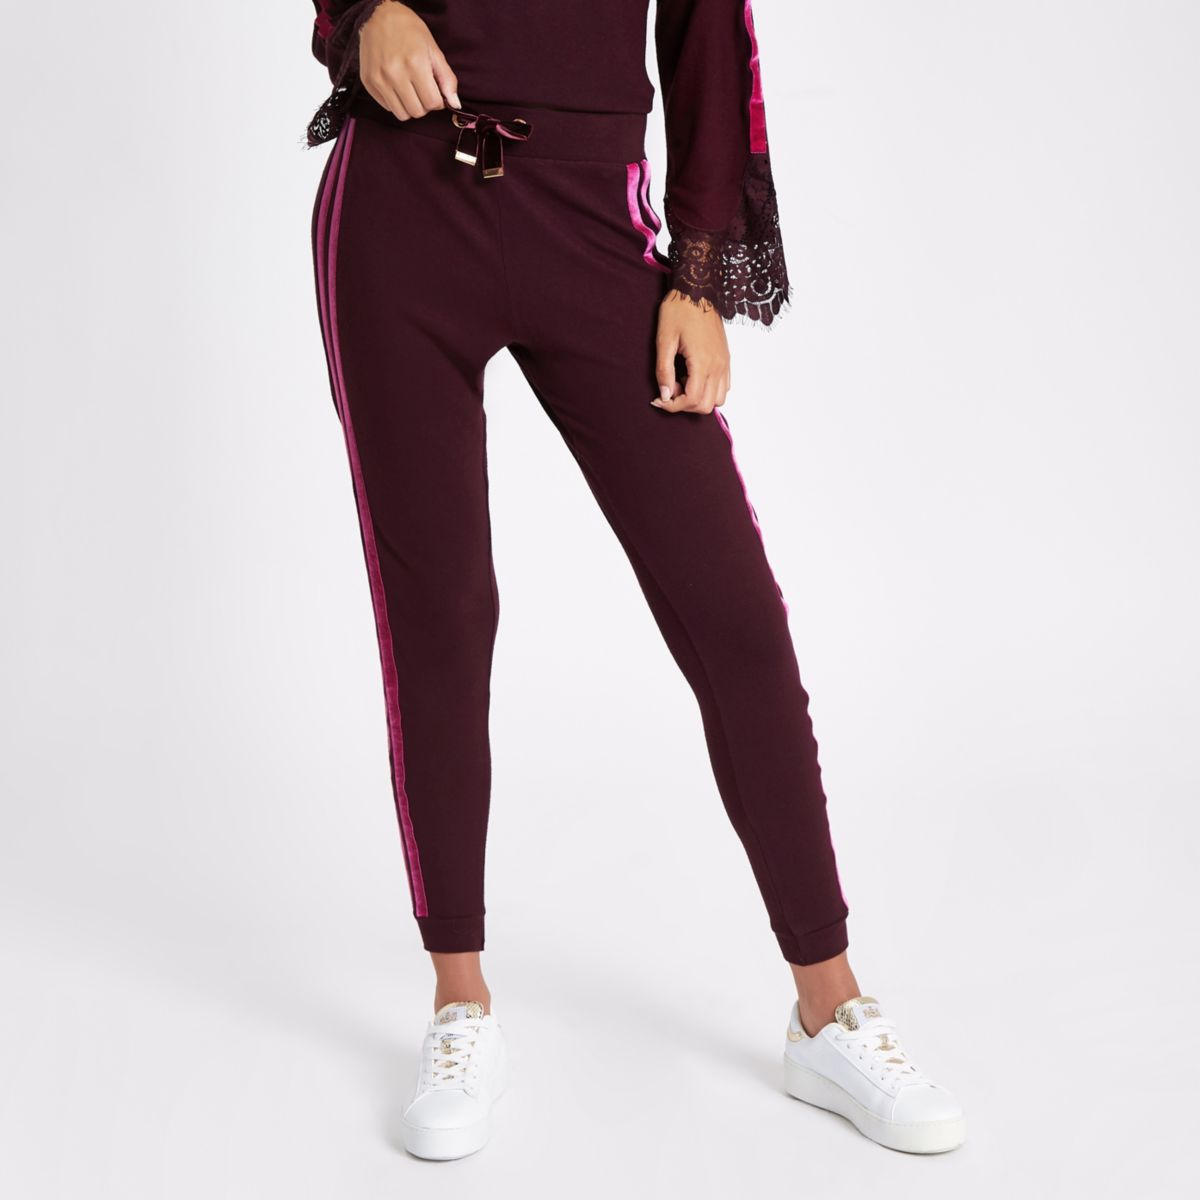 Red loungwear joggers